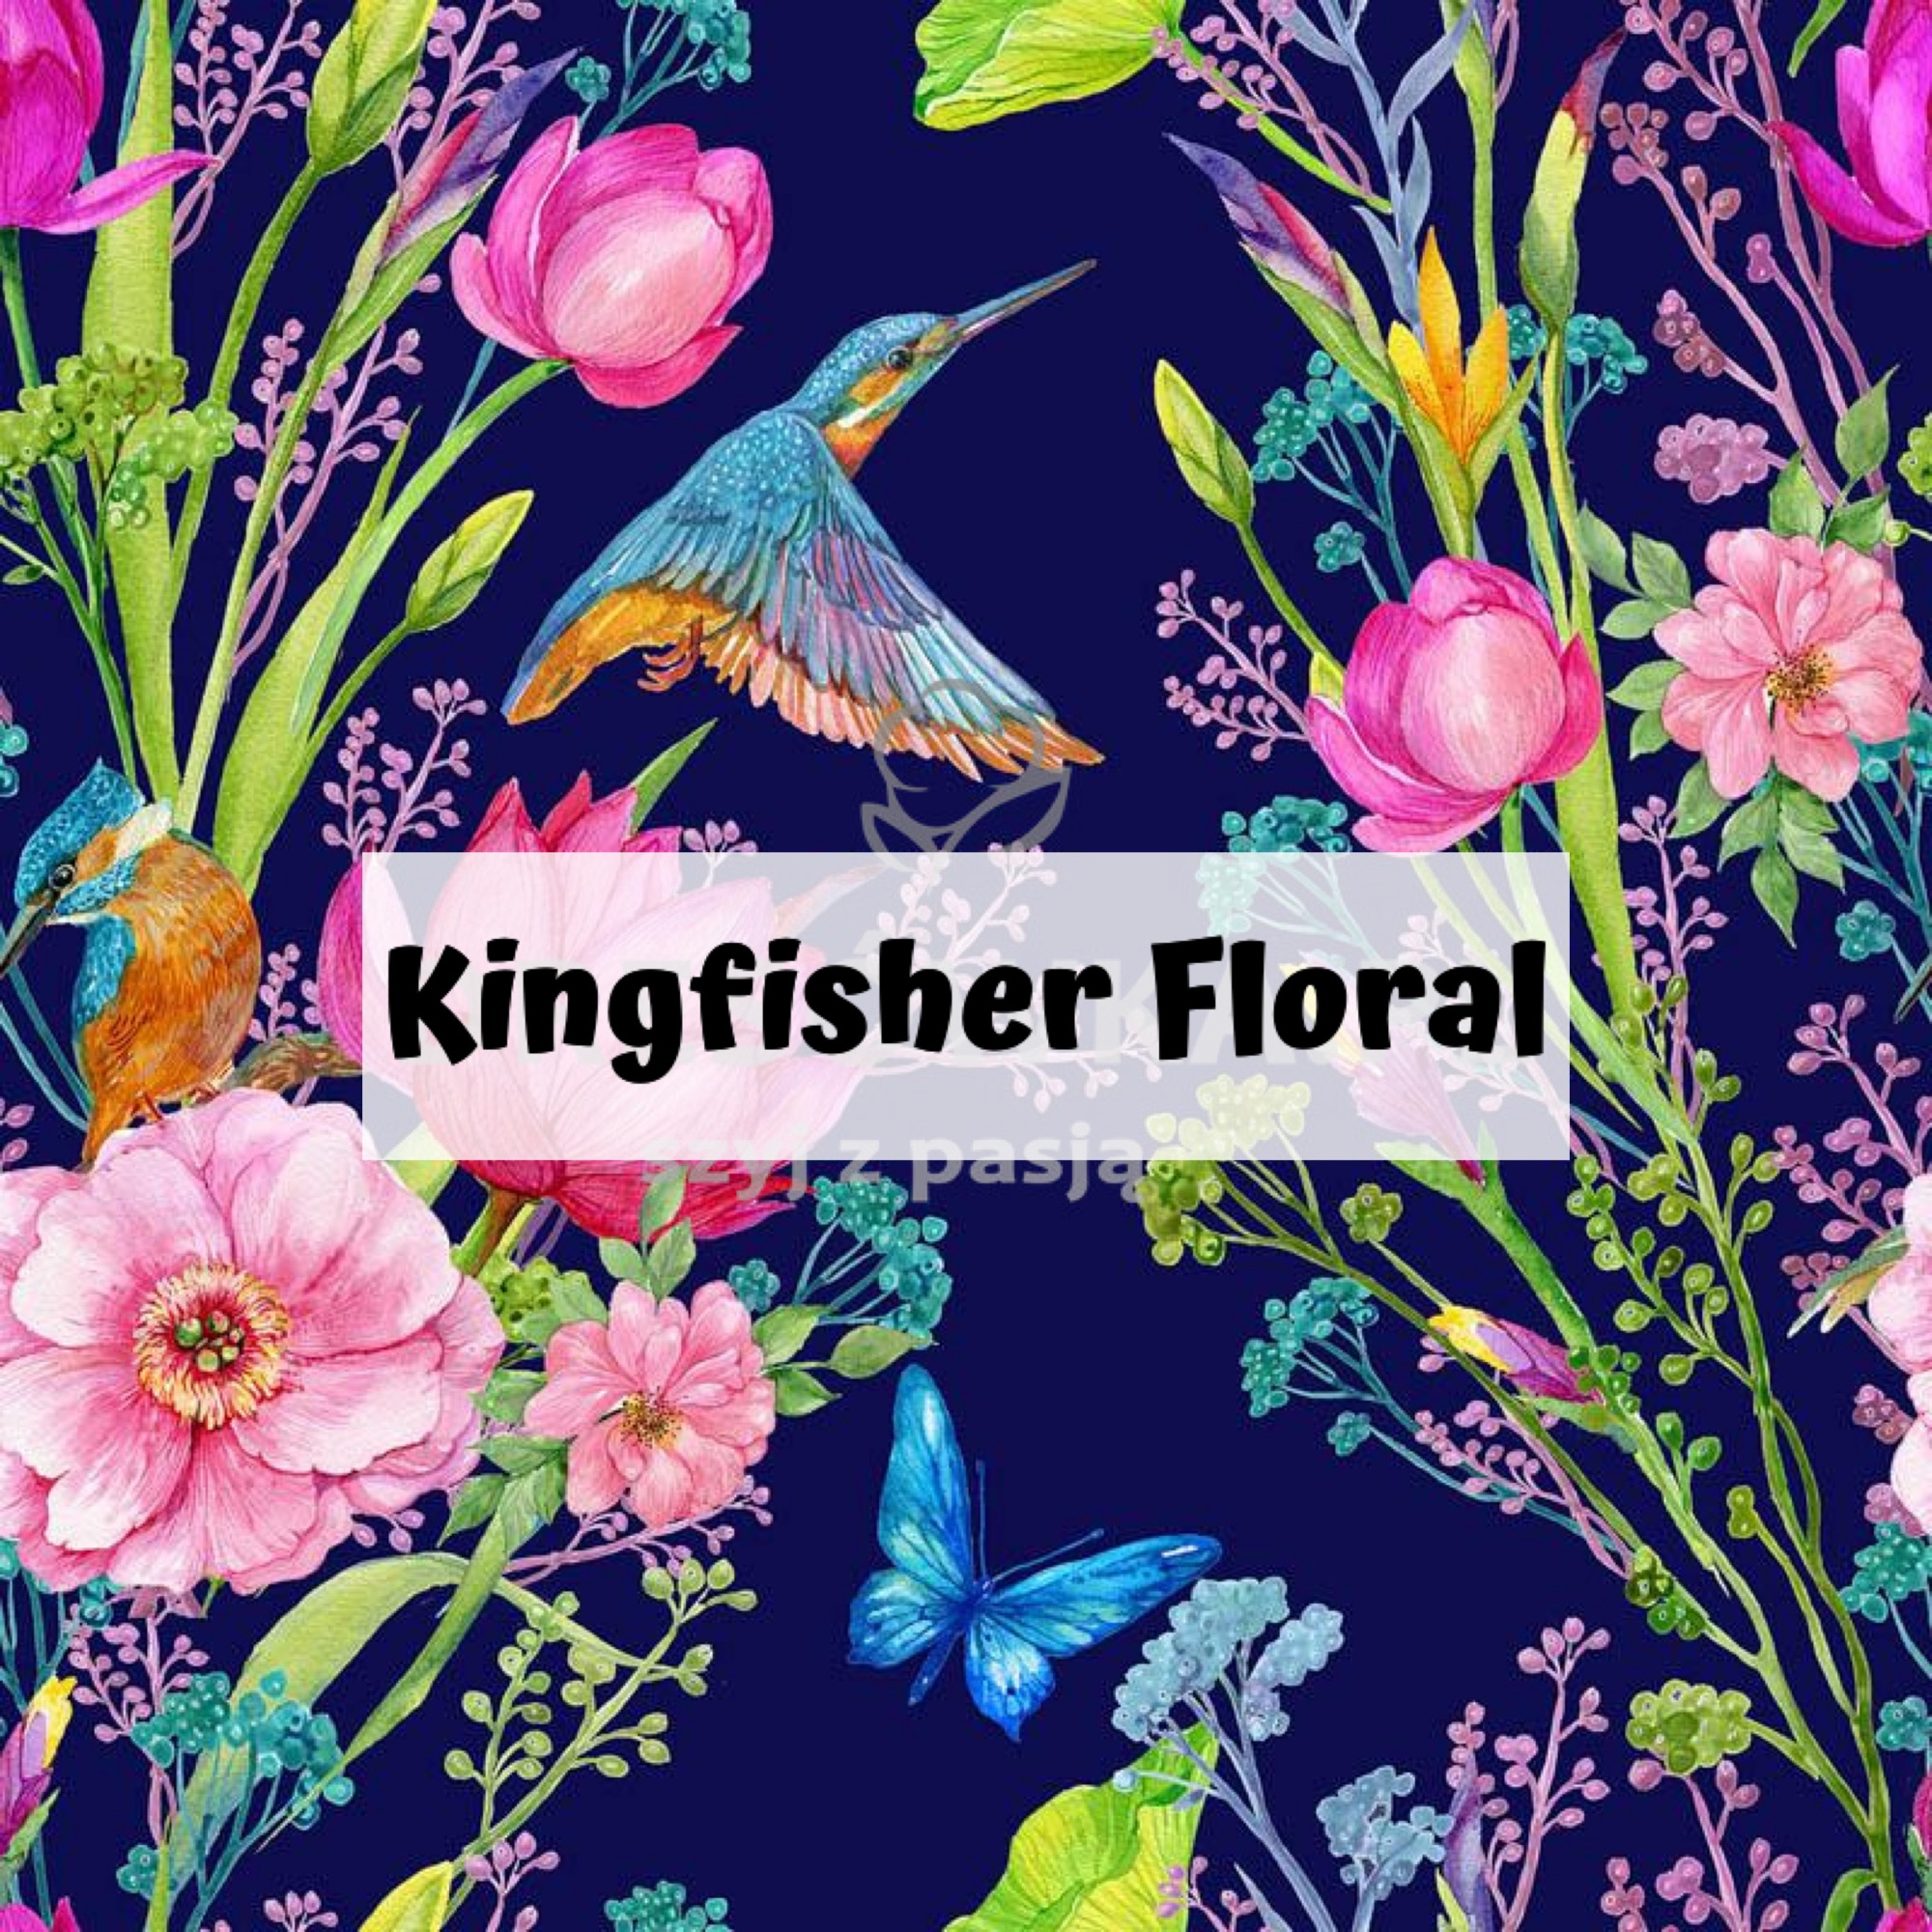 Kingfisher Floral